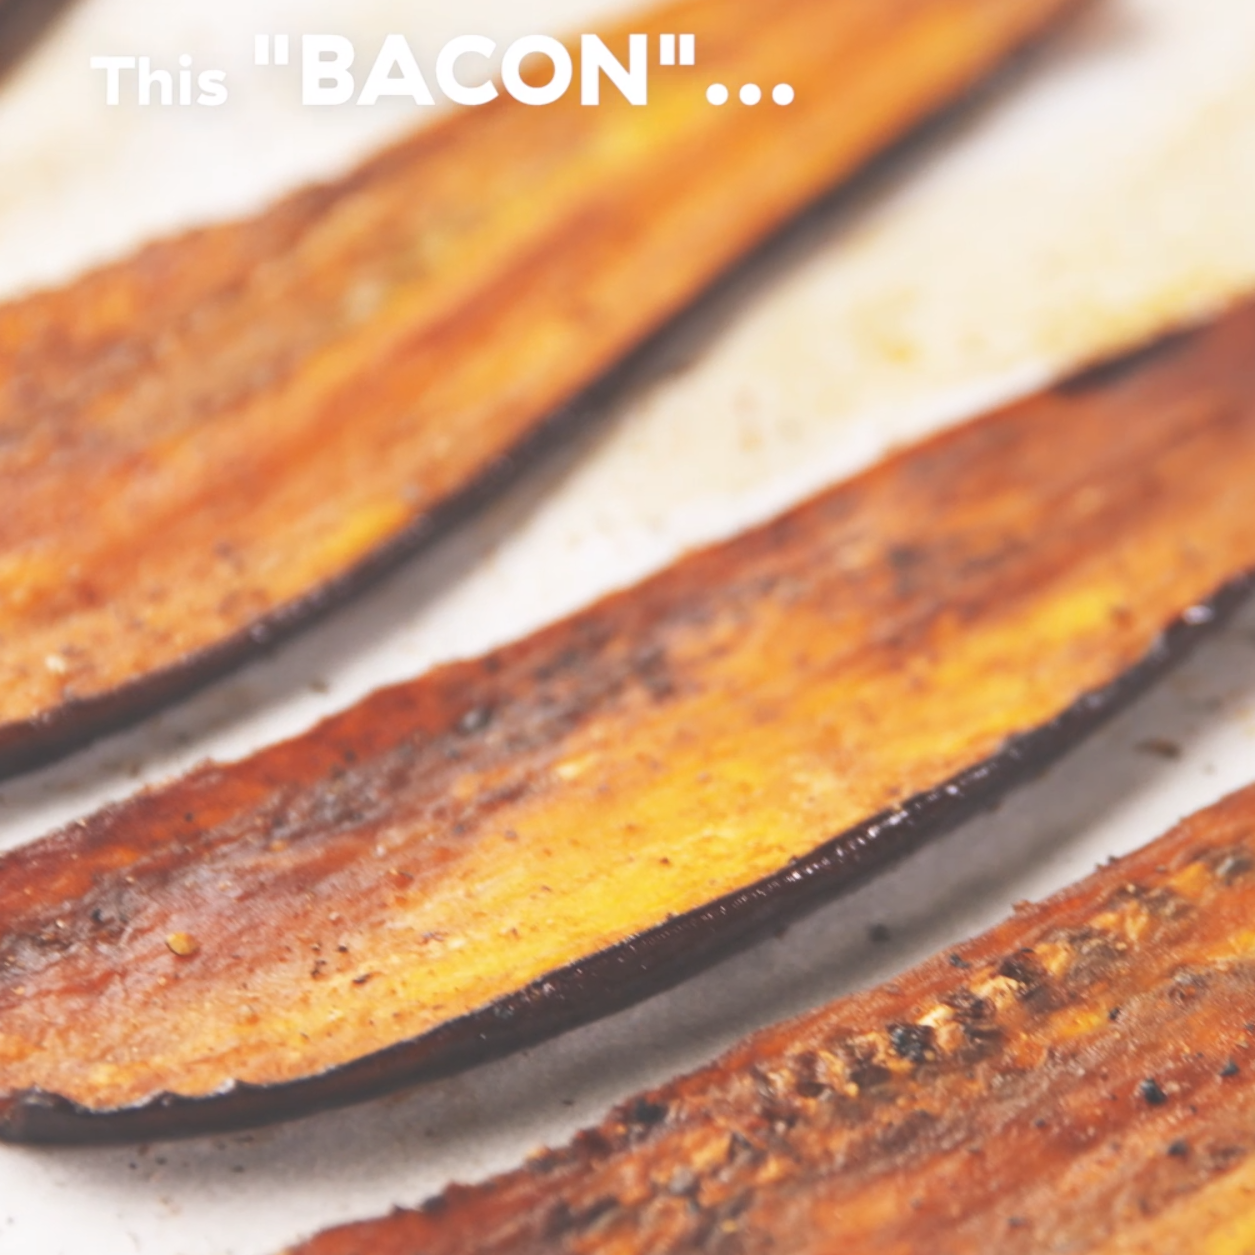 This vegetarian eggplant bacon is perfect when you need something savory for your sandwich. Get the